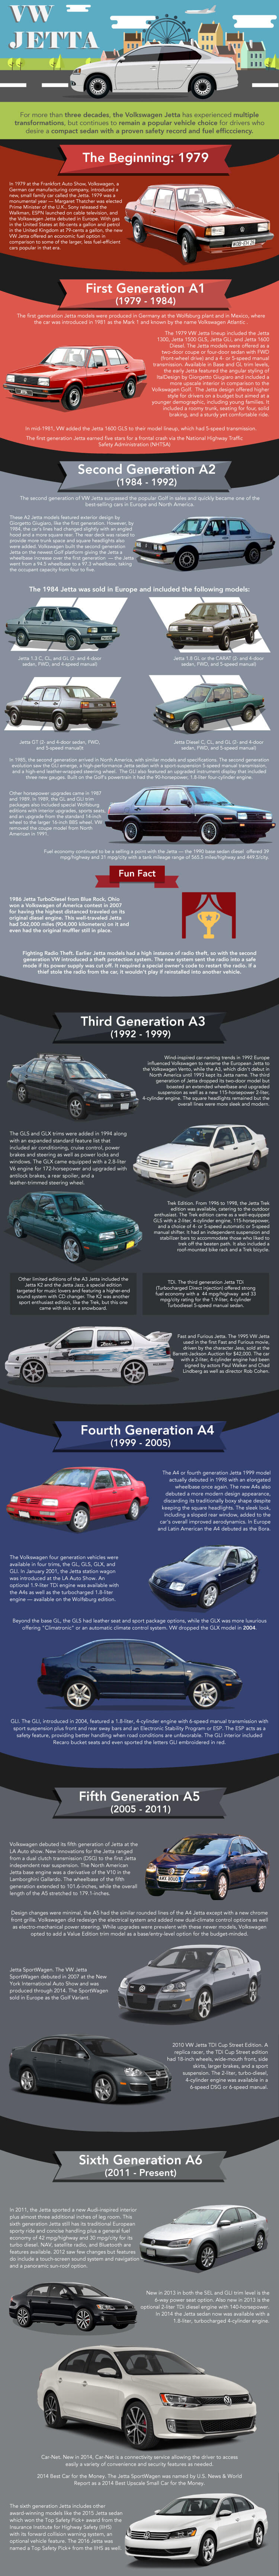 History of the Volkswagen Jetta